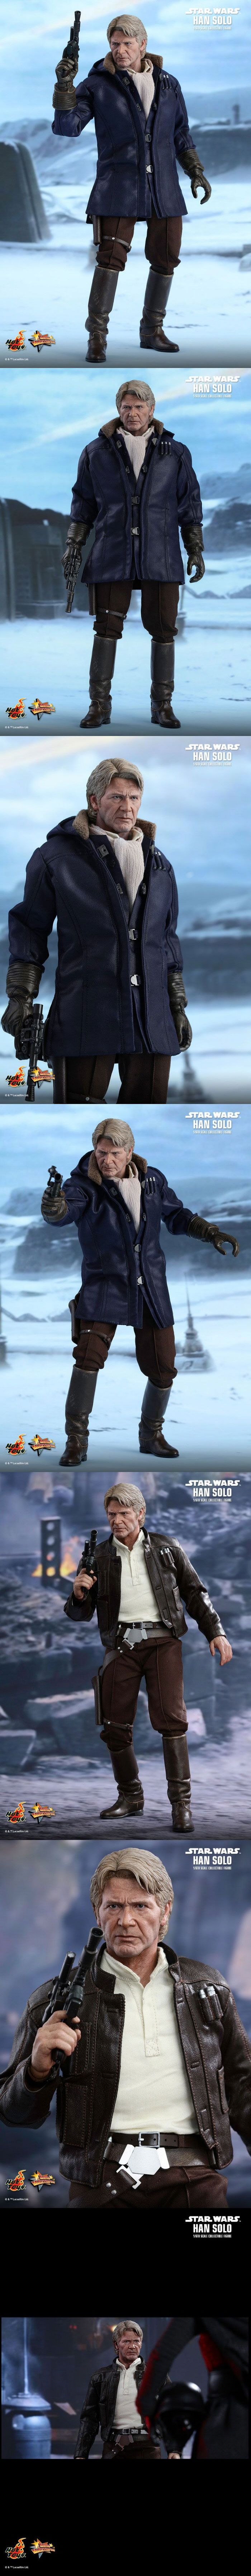 [Star Wars: The Force Awakens - 1/6th scale Han Solo Figure]